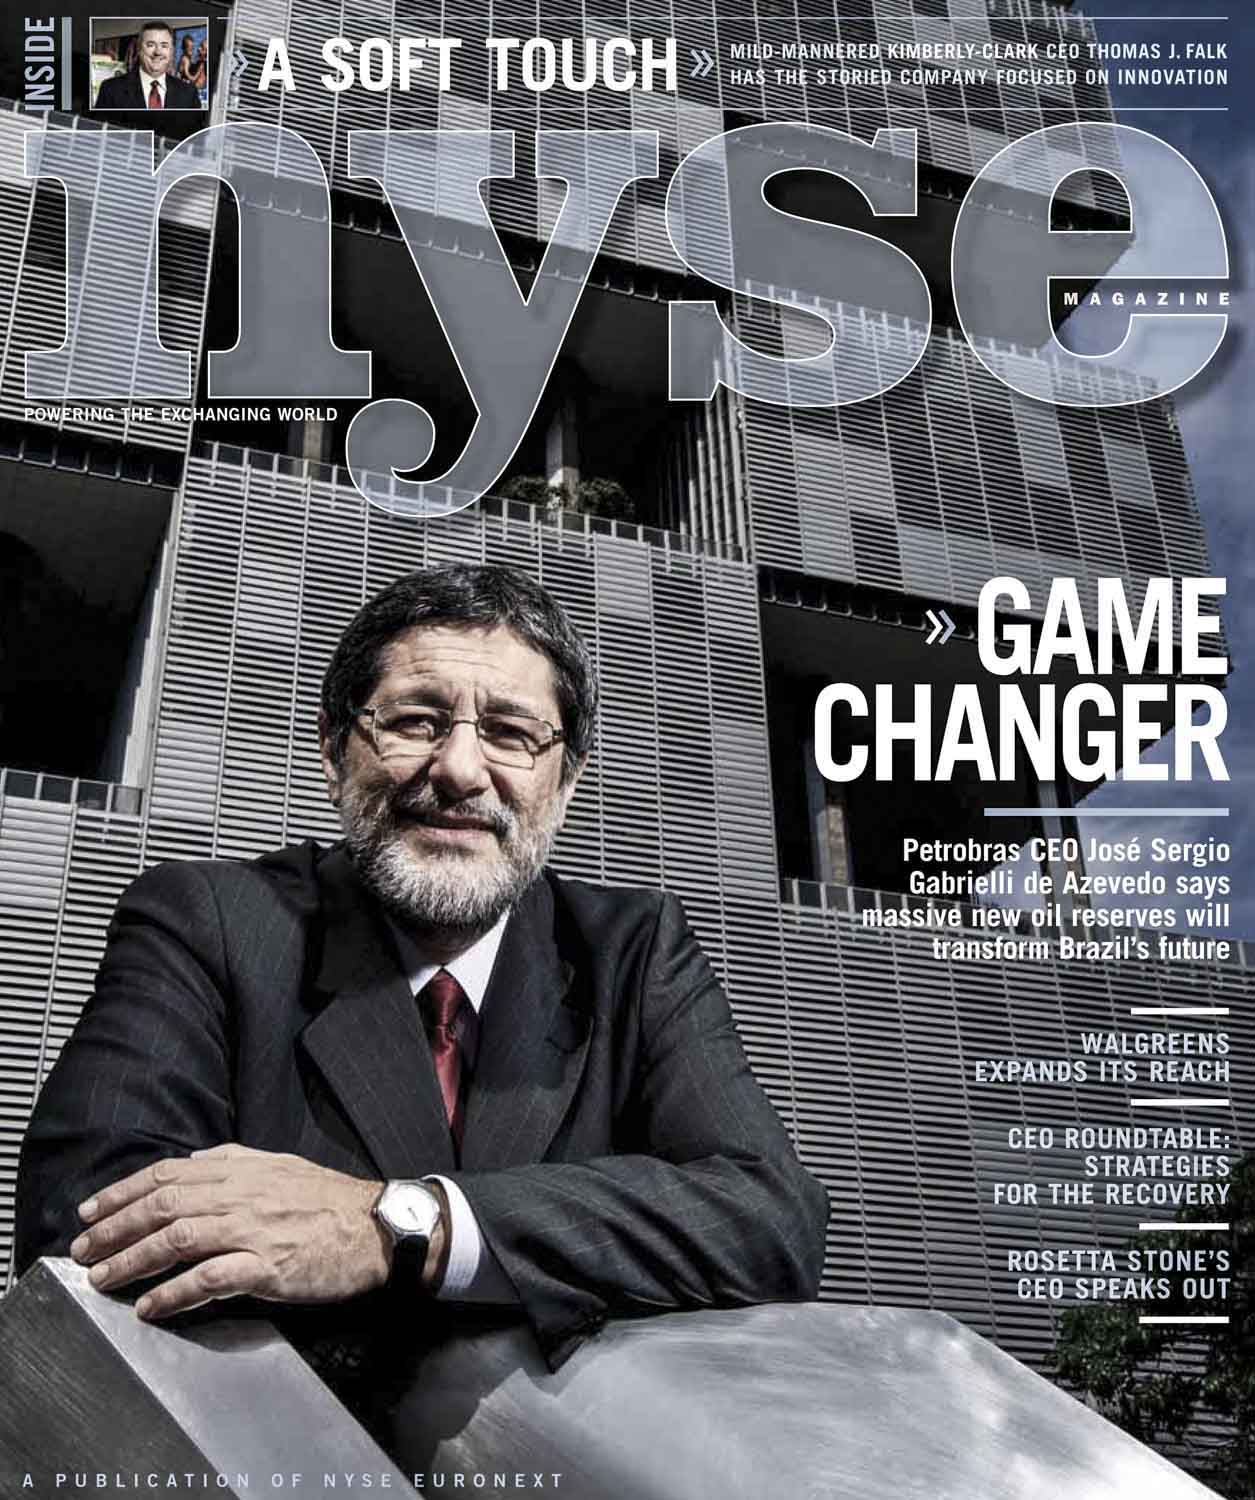 New York Stock Exchange Magazine, Petrobras Ceo Jose Sergio Gabrielli